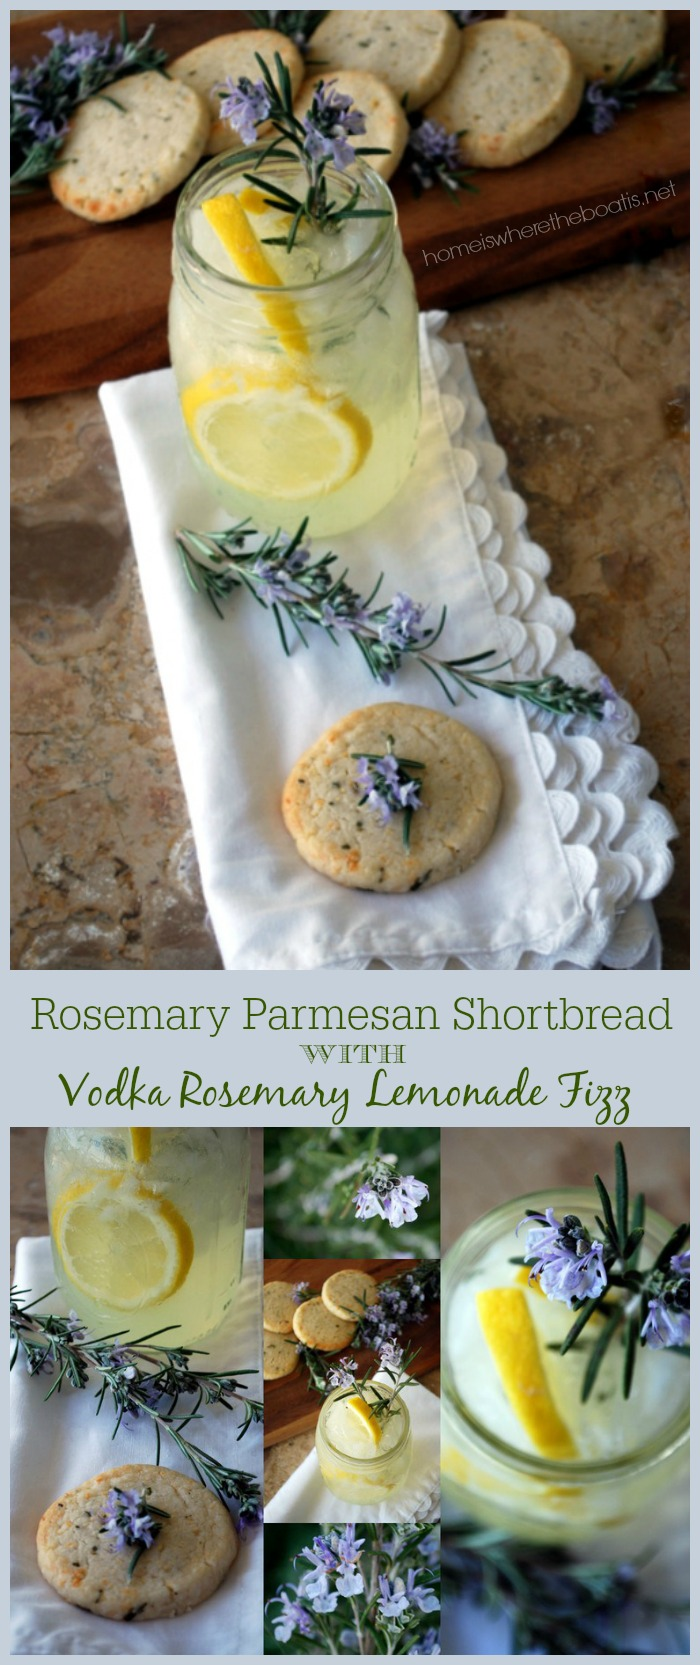 Rosemary Parm Shortbread with Vodka Rosemary Lemonade Fizz